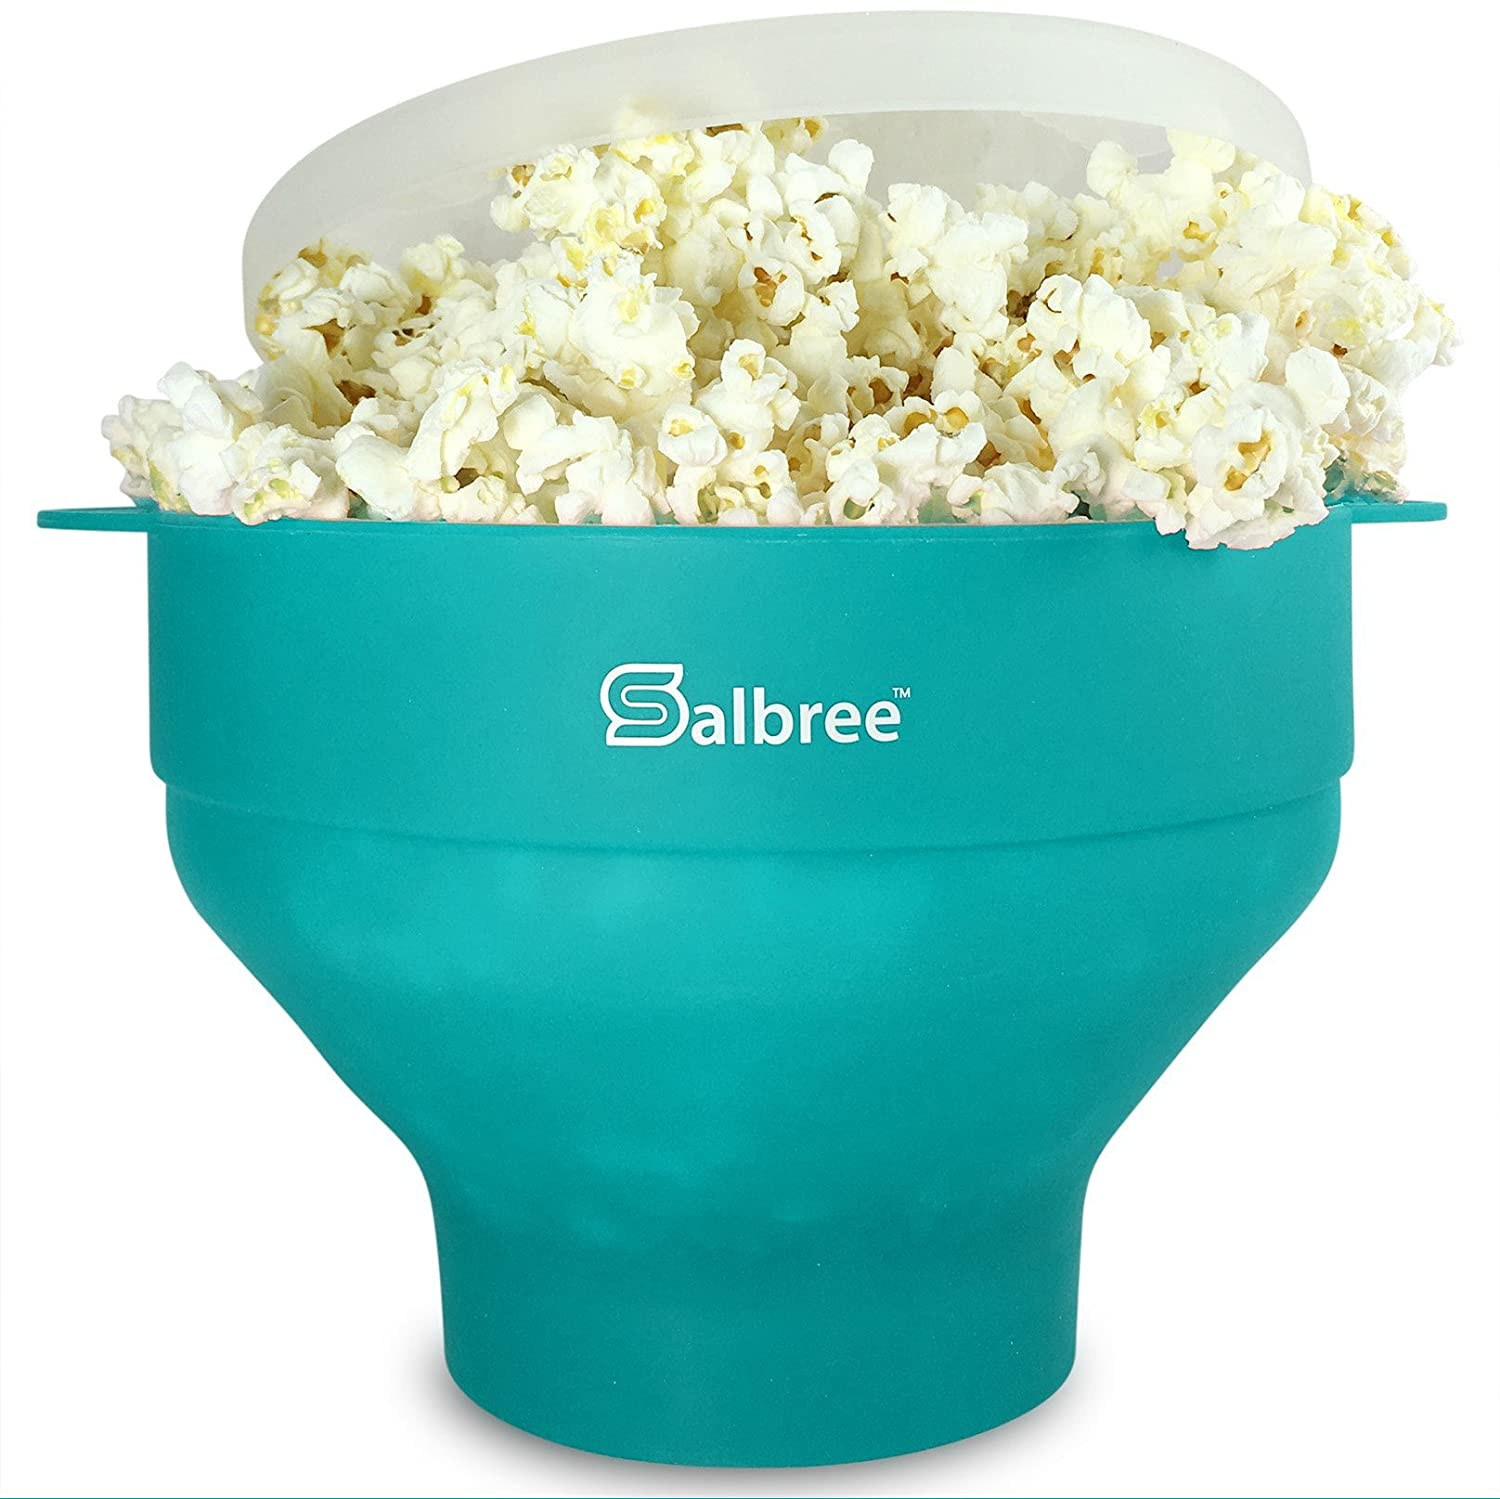 The Original Salbree Microwave Popcorn Popper, Silicone Popcorn Maker, Collapsible Bowl BPA Free -14 Colors Available (Aqua)